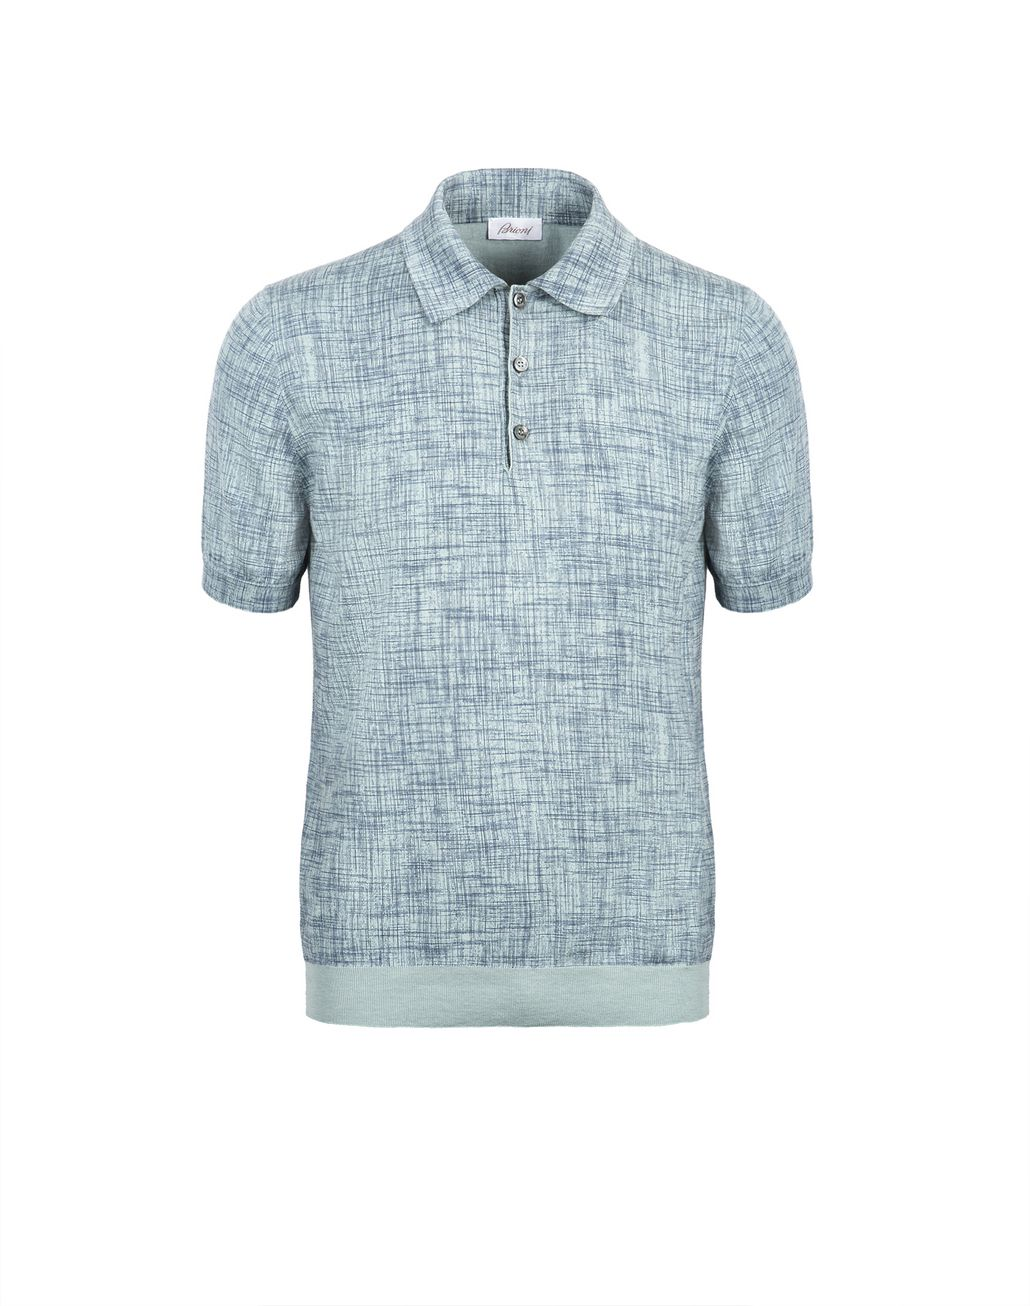 BRIONI Bluette Printed Cotton and Silk Polo Shirt   T-Shirts & Polos [*** pickupInStoreShippingNotGuaranteed_info ***] f